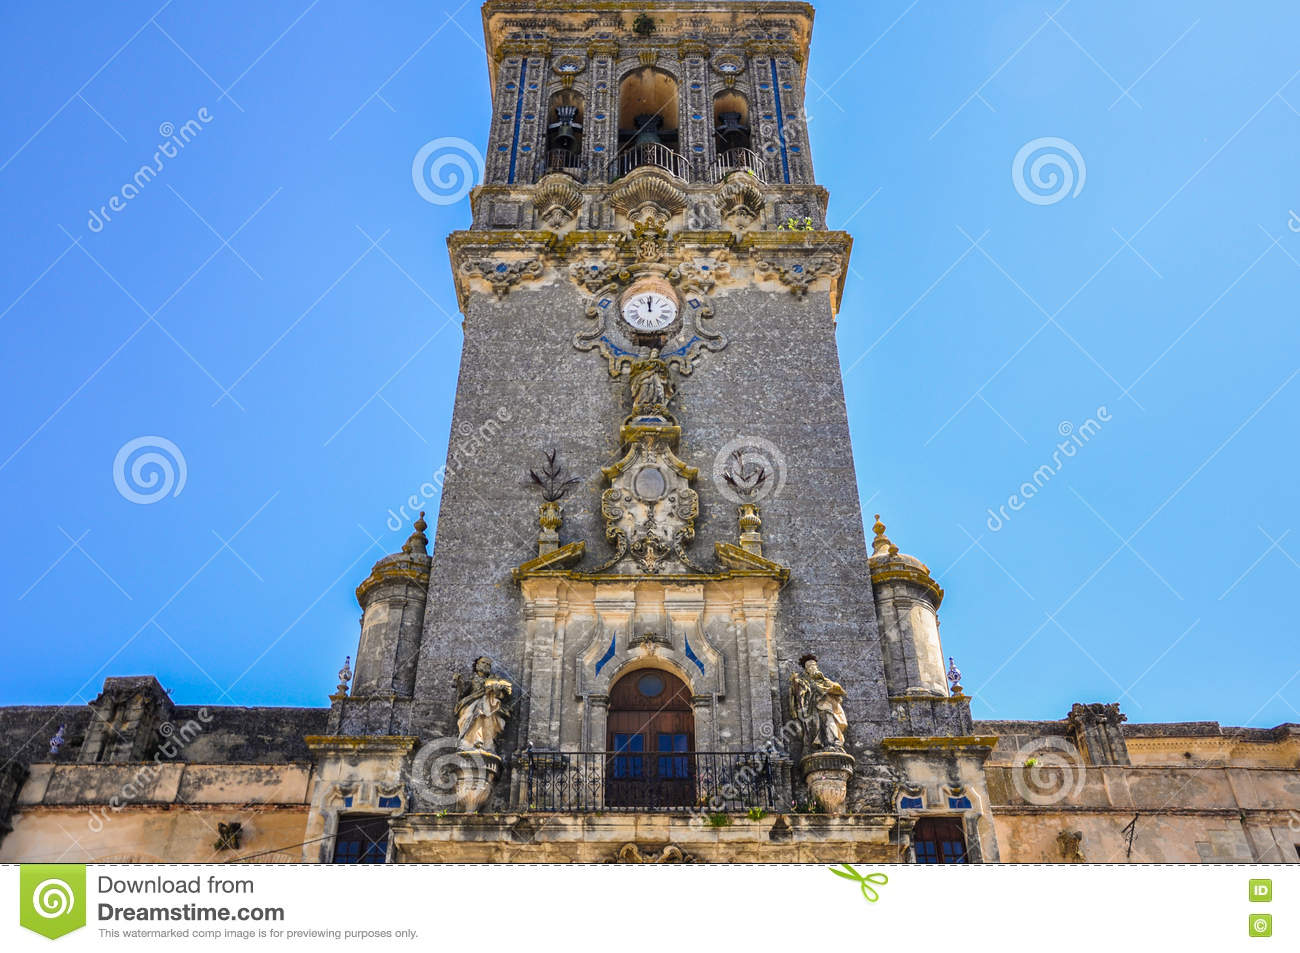 3daee3783 Front view of the Tower of St. Mary of the Assumption in Arcos de la  Frontera